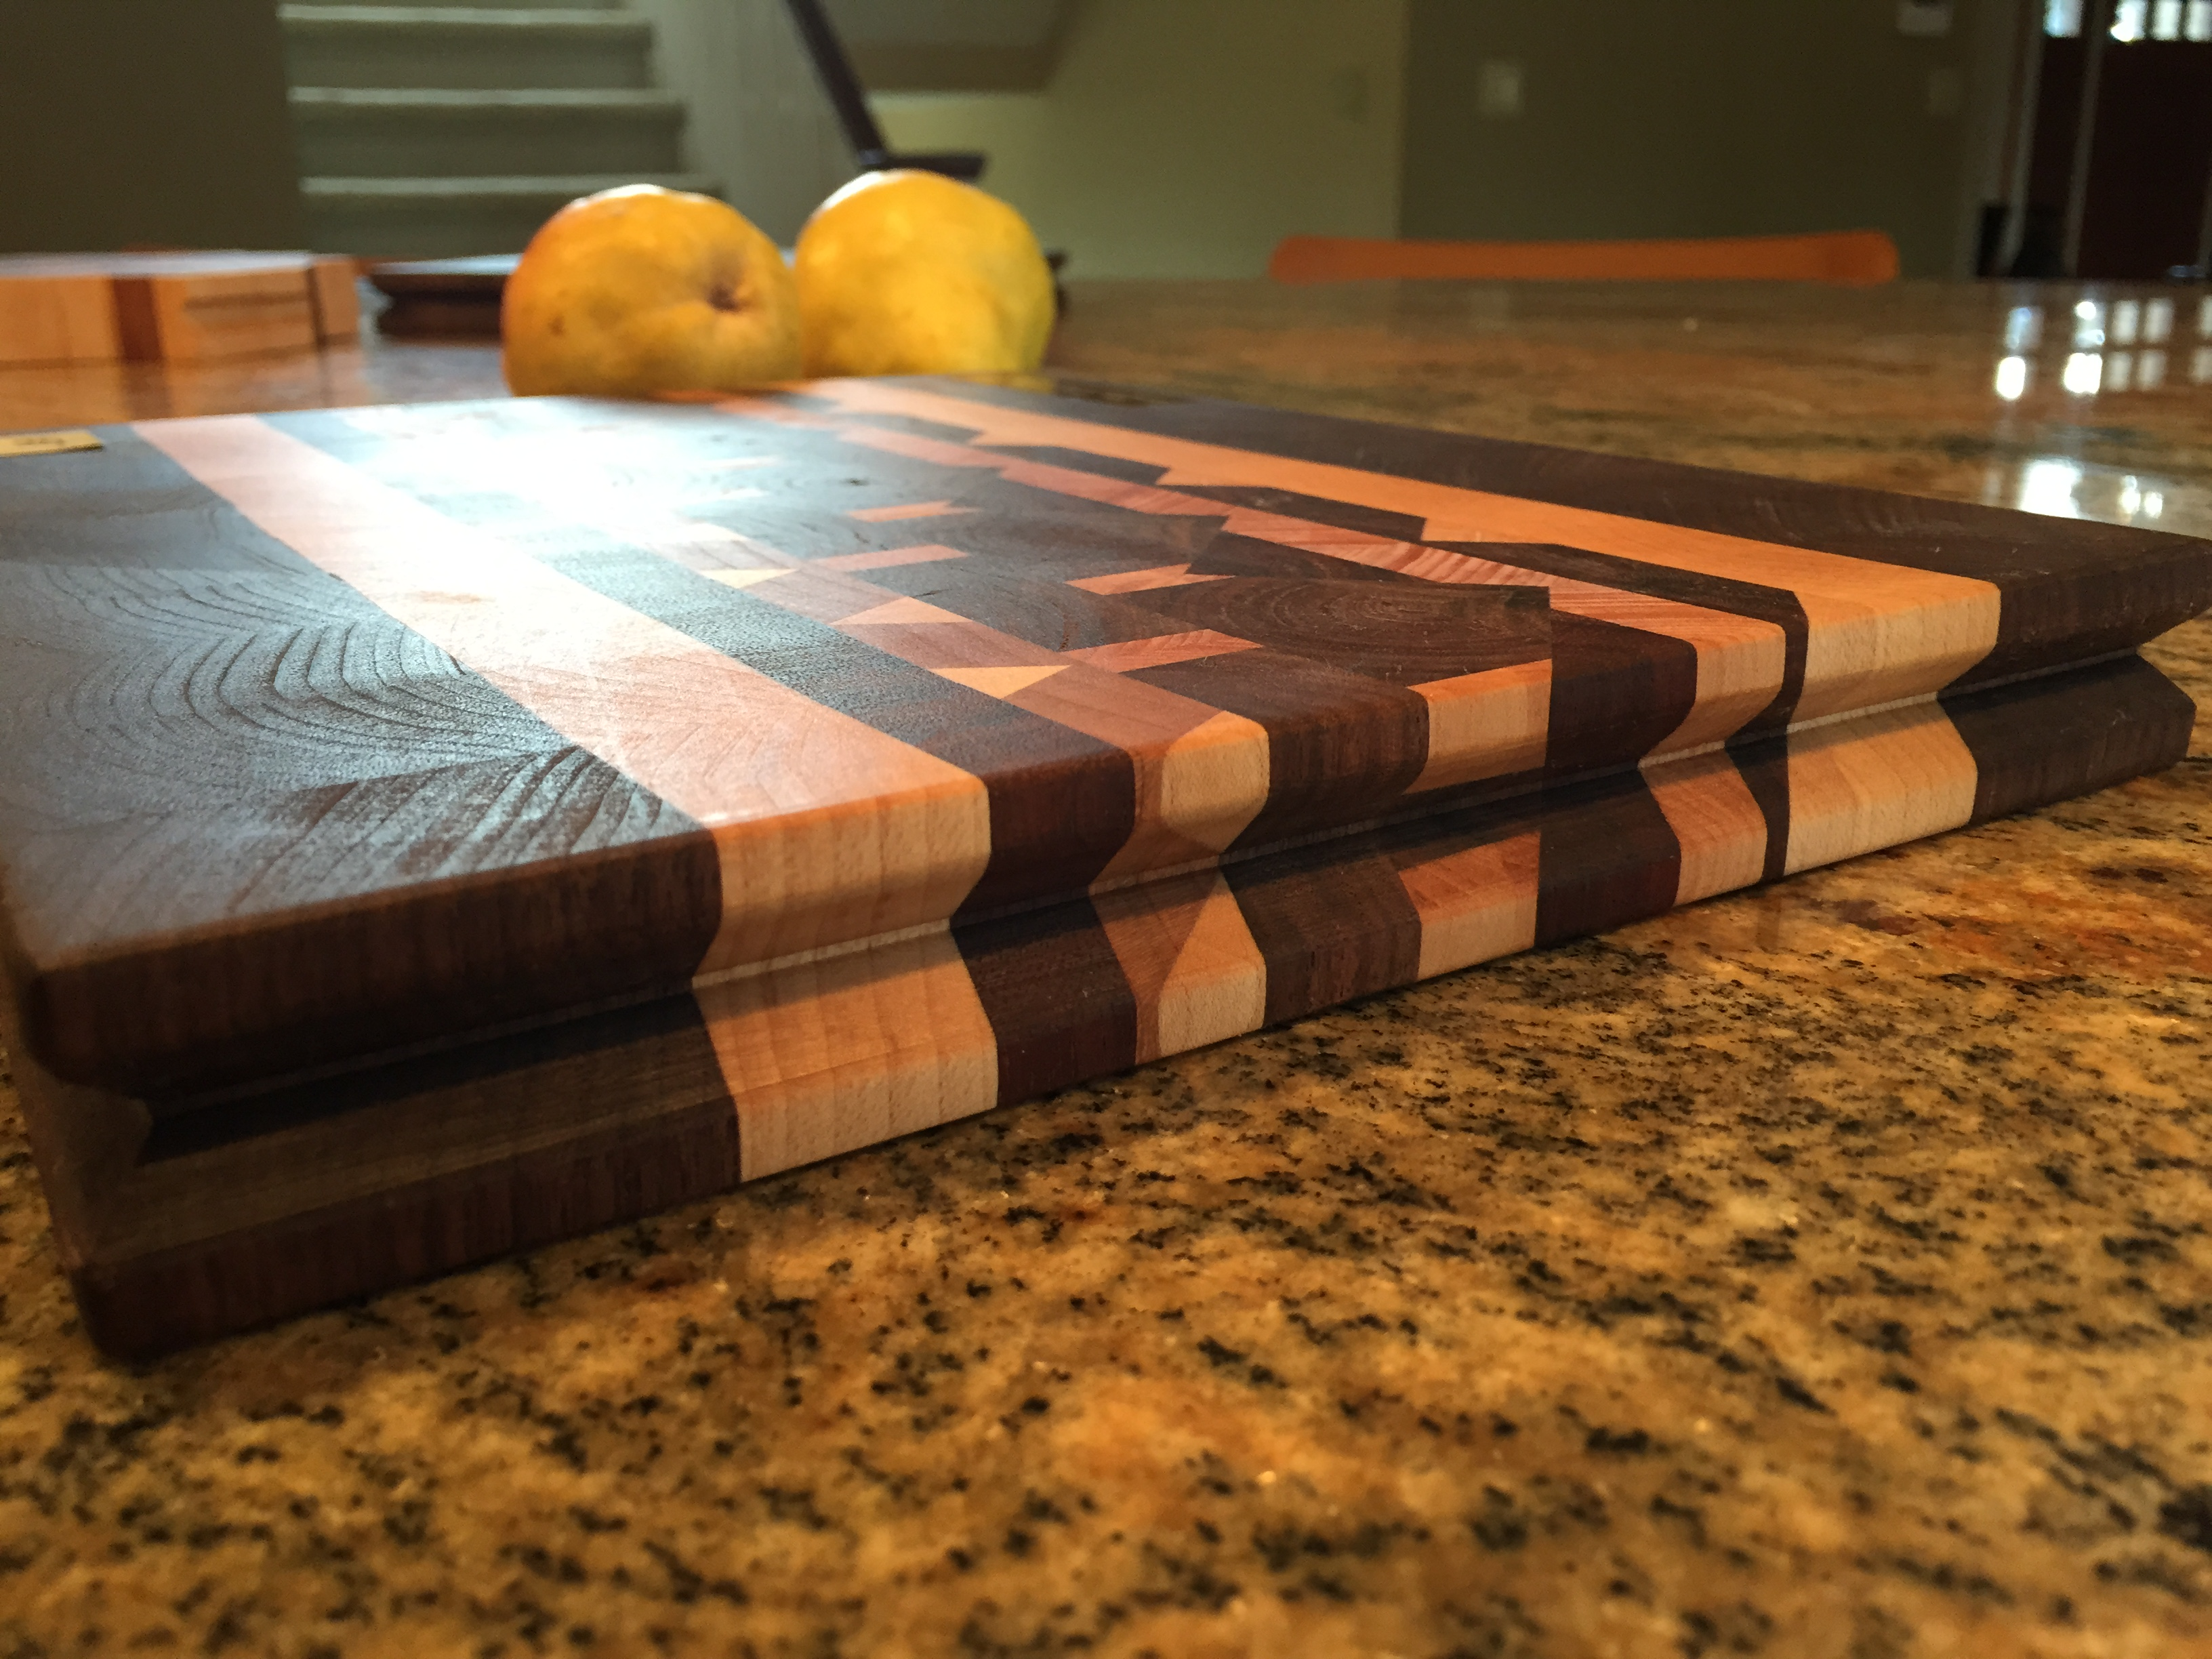 #7 Serving/cutting board geometric design